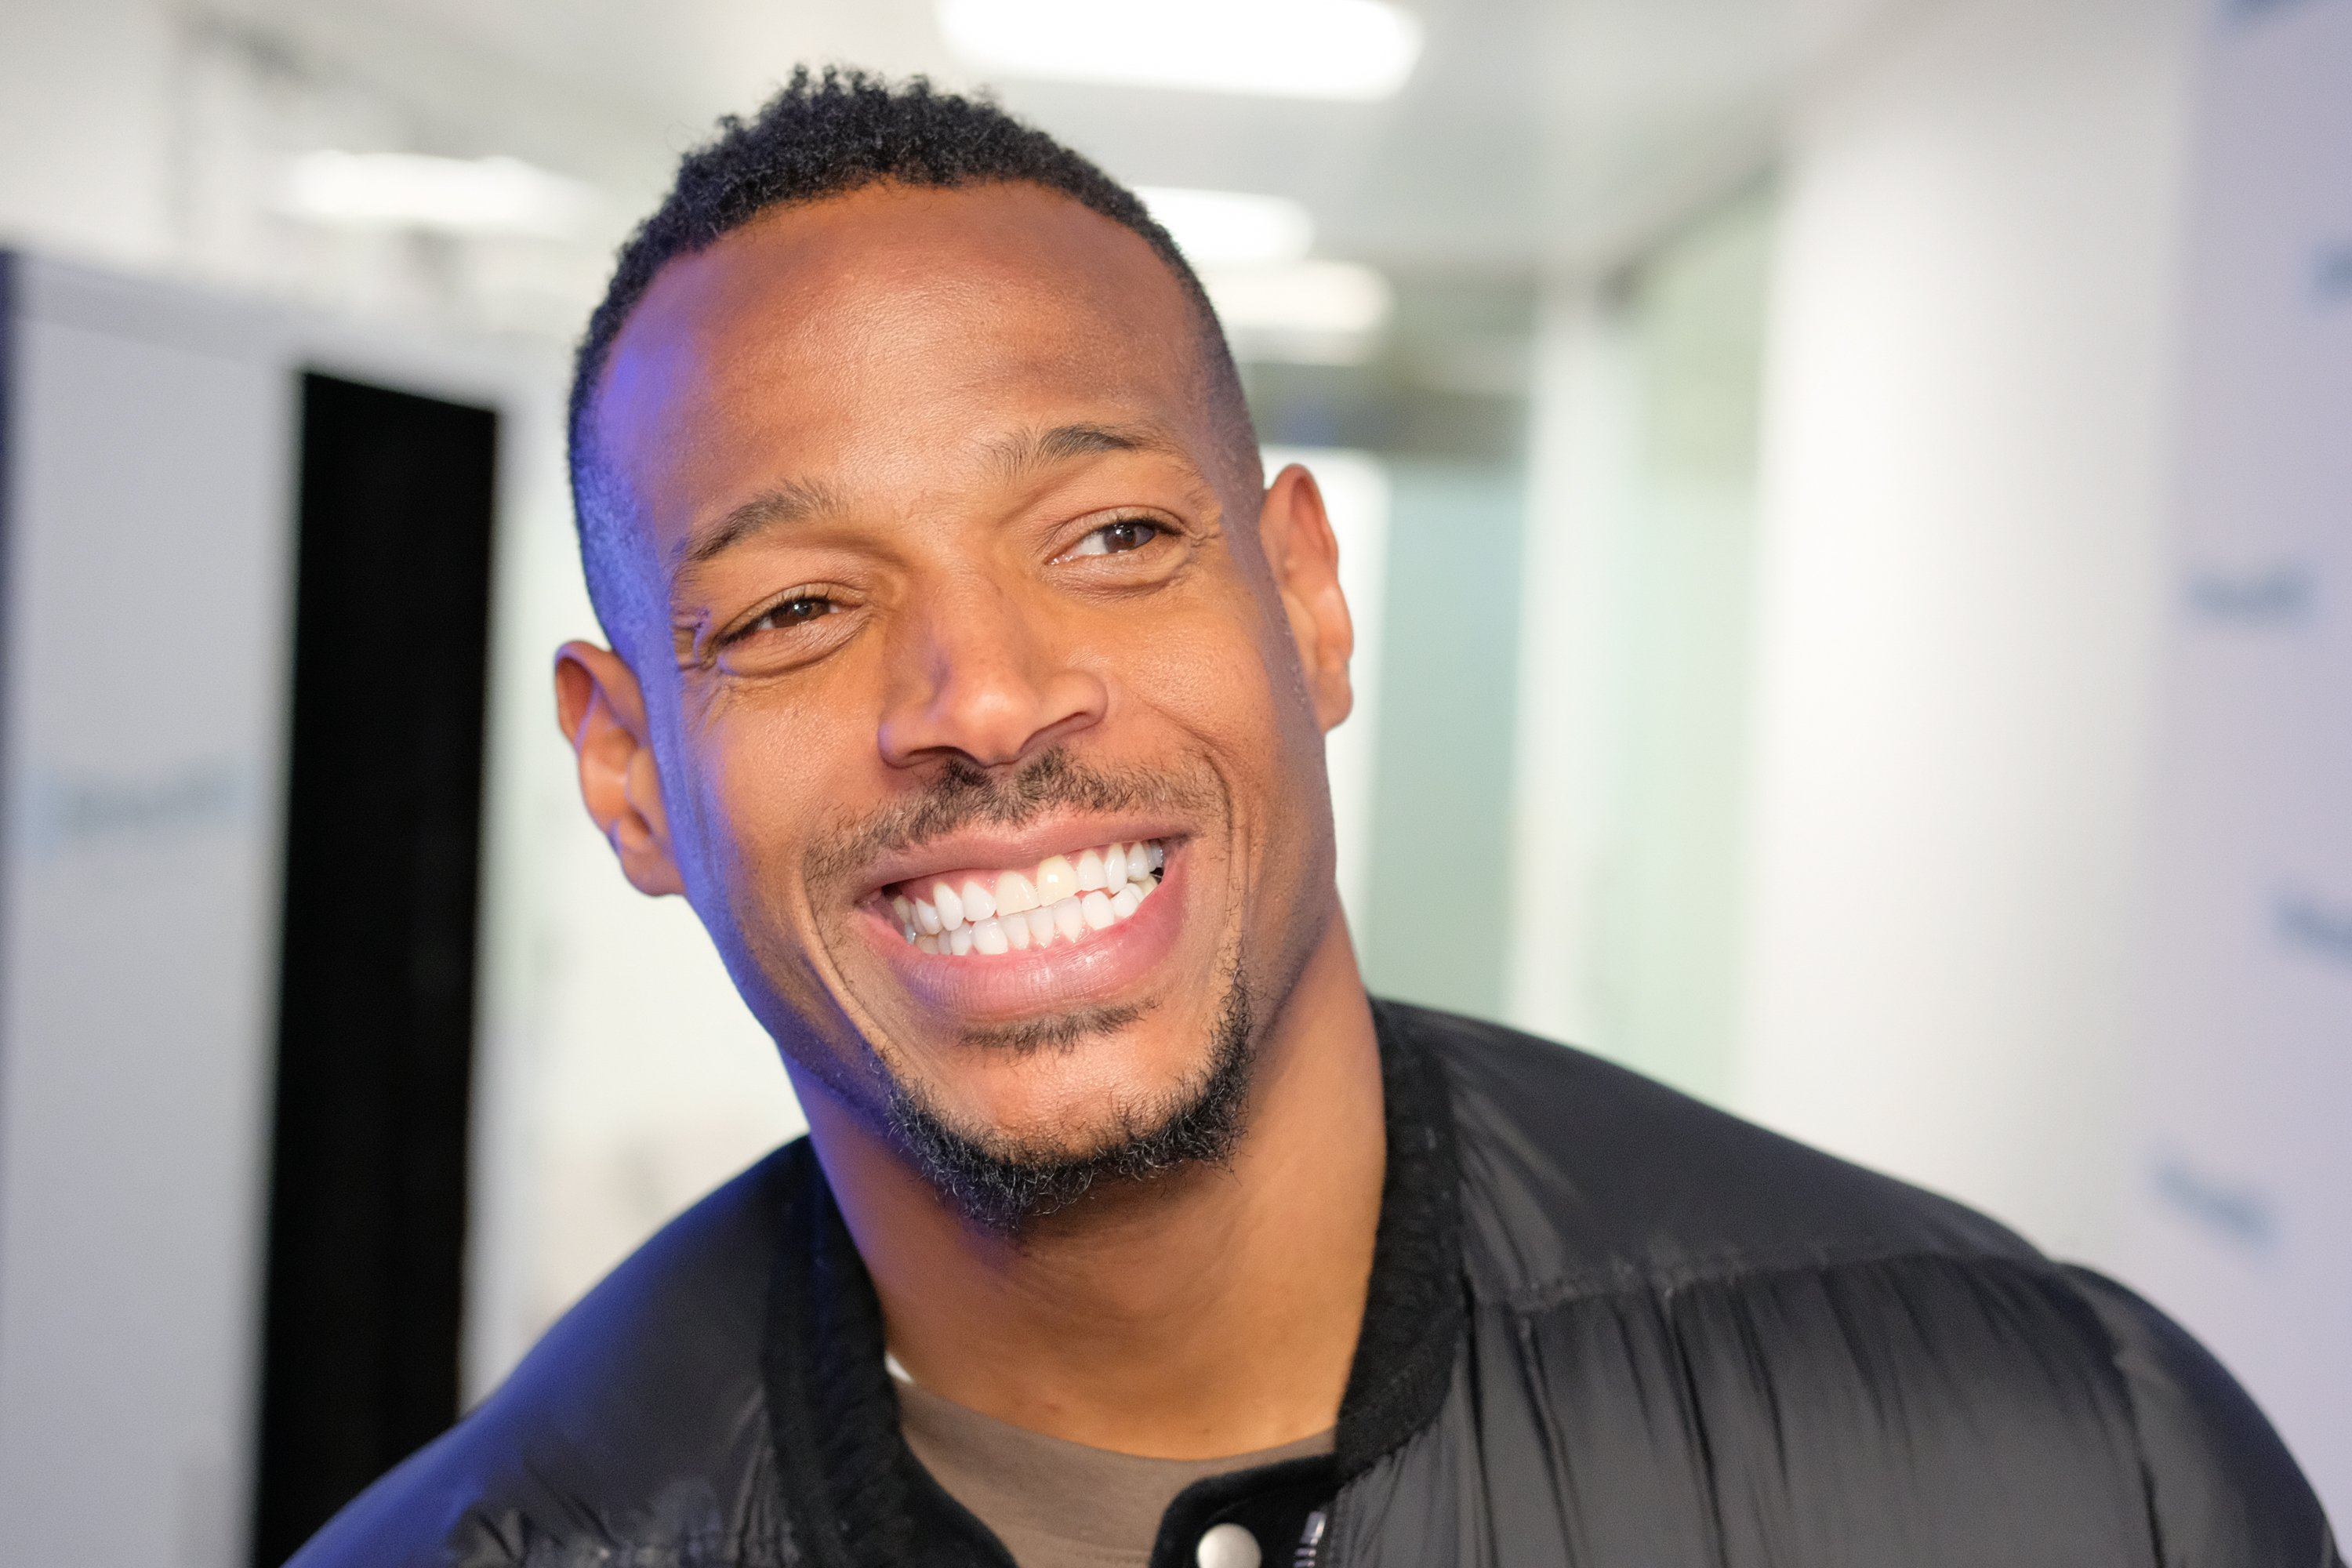 Marlon Wayans pictured at the SiriusXM Studios on March 2, 2018 in New York City. | Source: Getty Images